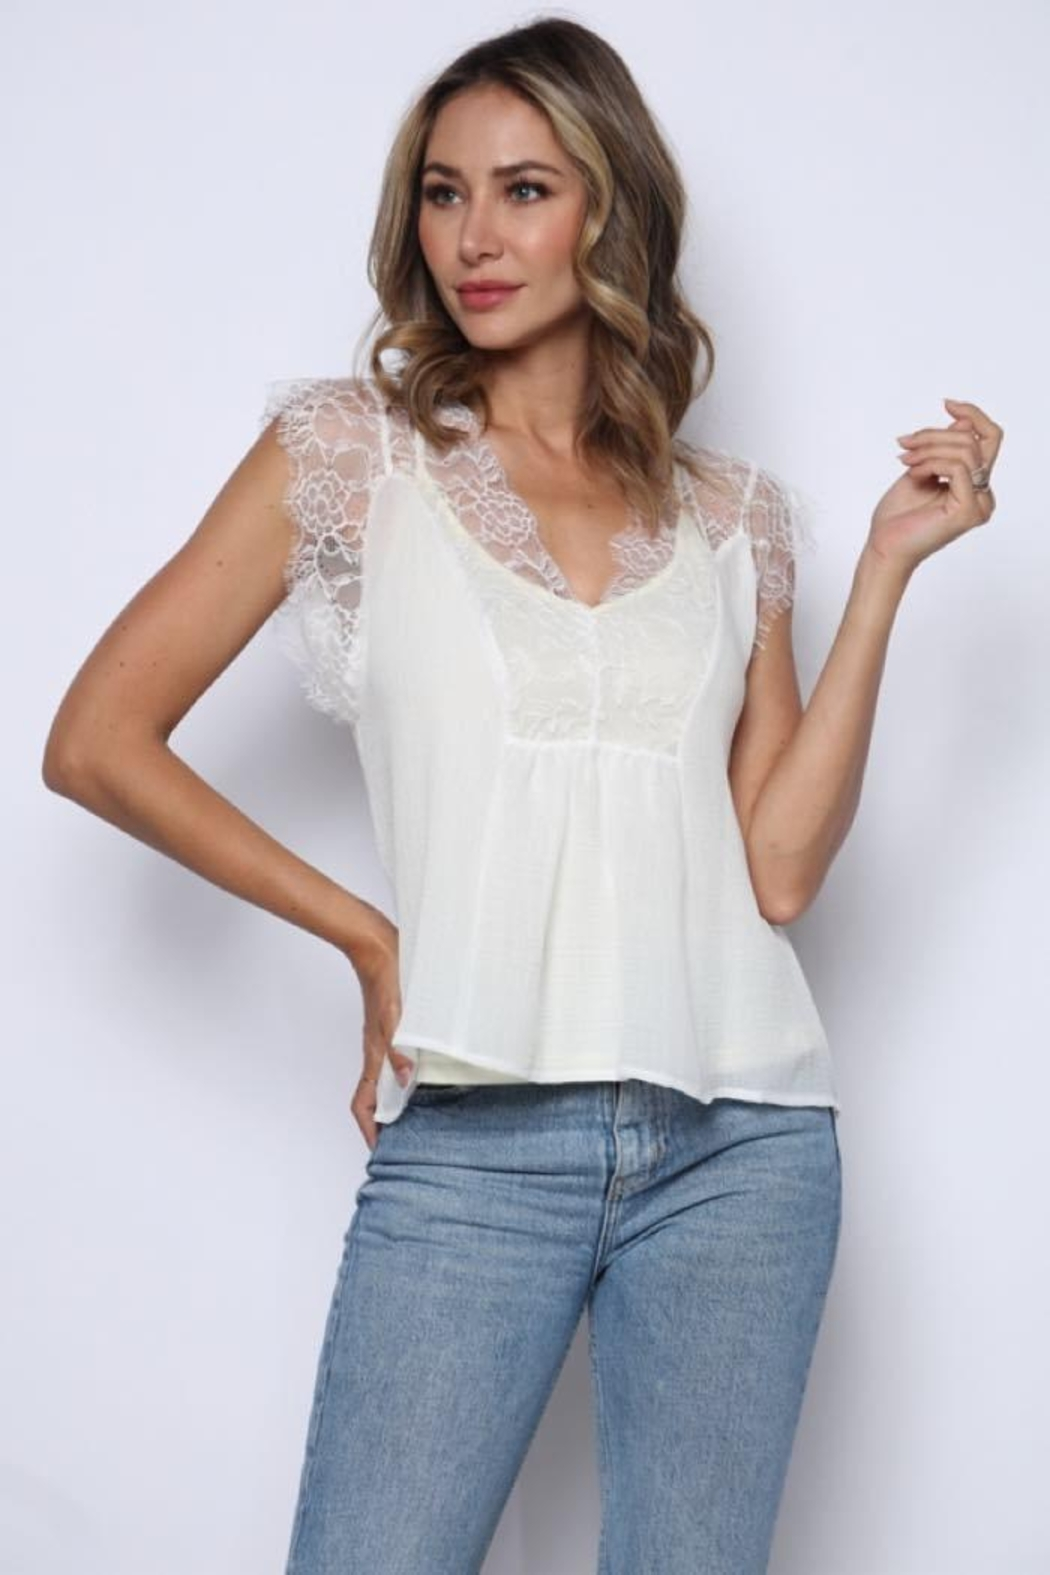 Solo Fashion New York Ivory Lace Tank Top Lining Top - Main Image